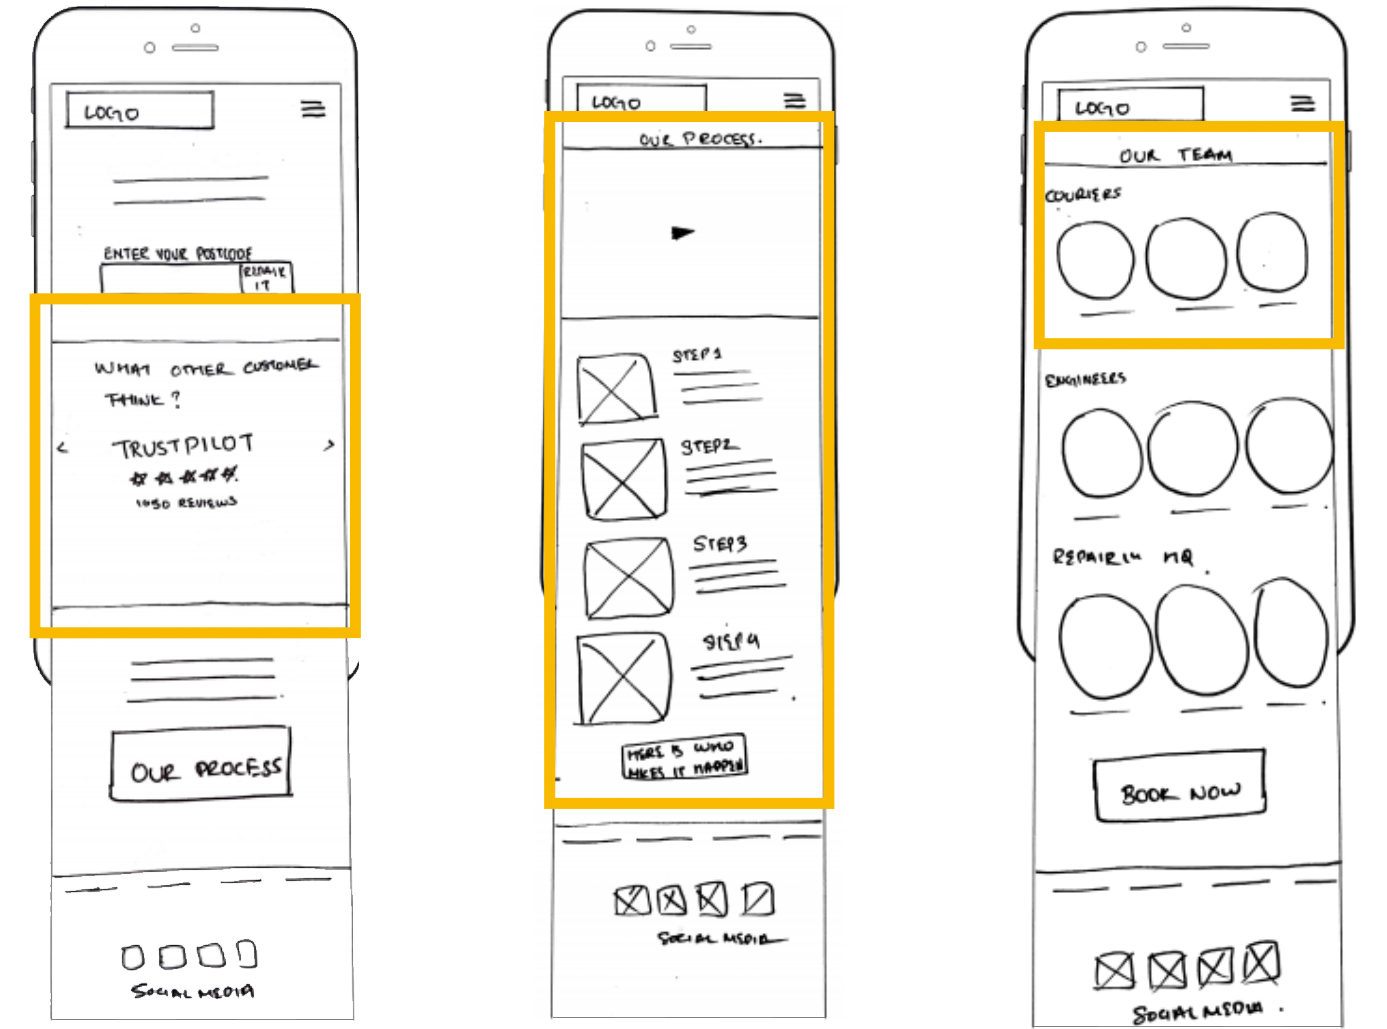 Paper prototype: Homepage, Process page, Our Team page.